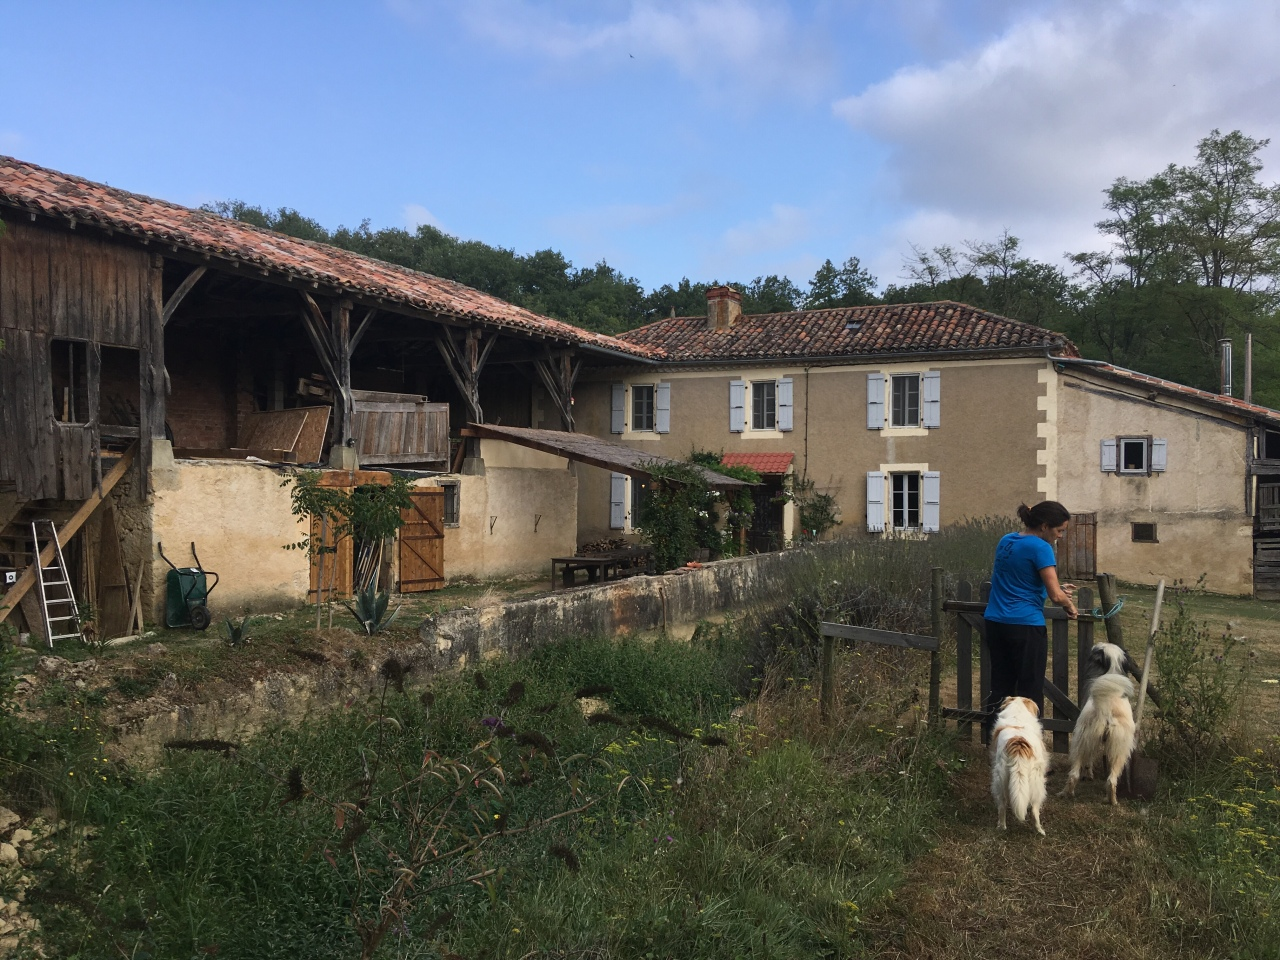 A little slice of animal husbandry heaven in the south of France, byWayne